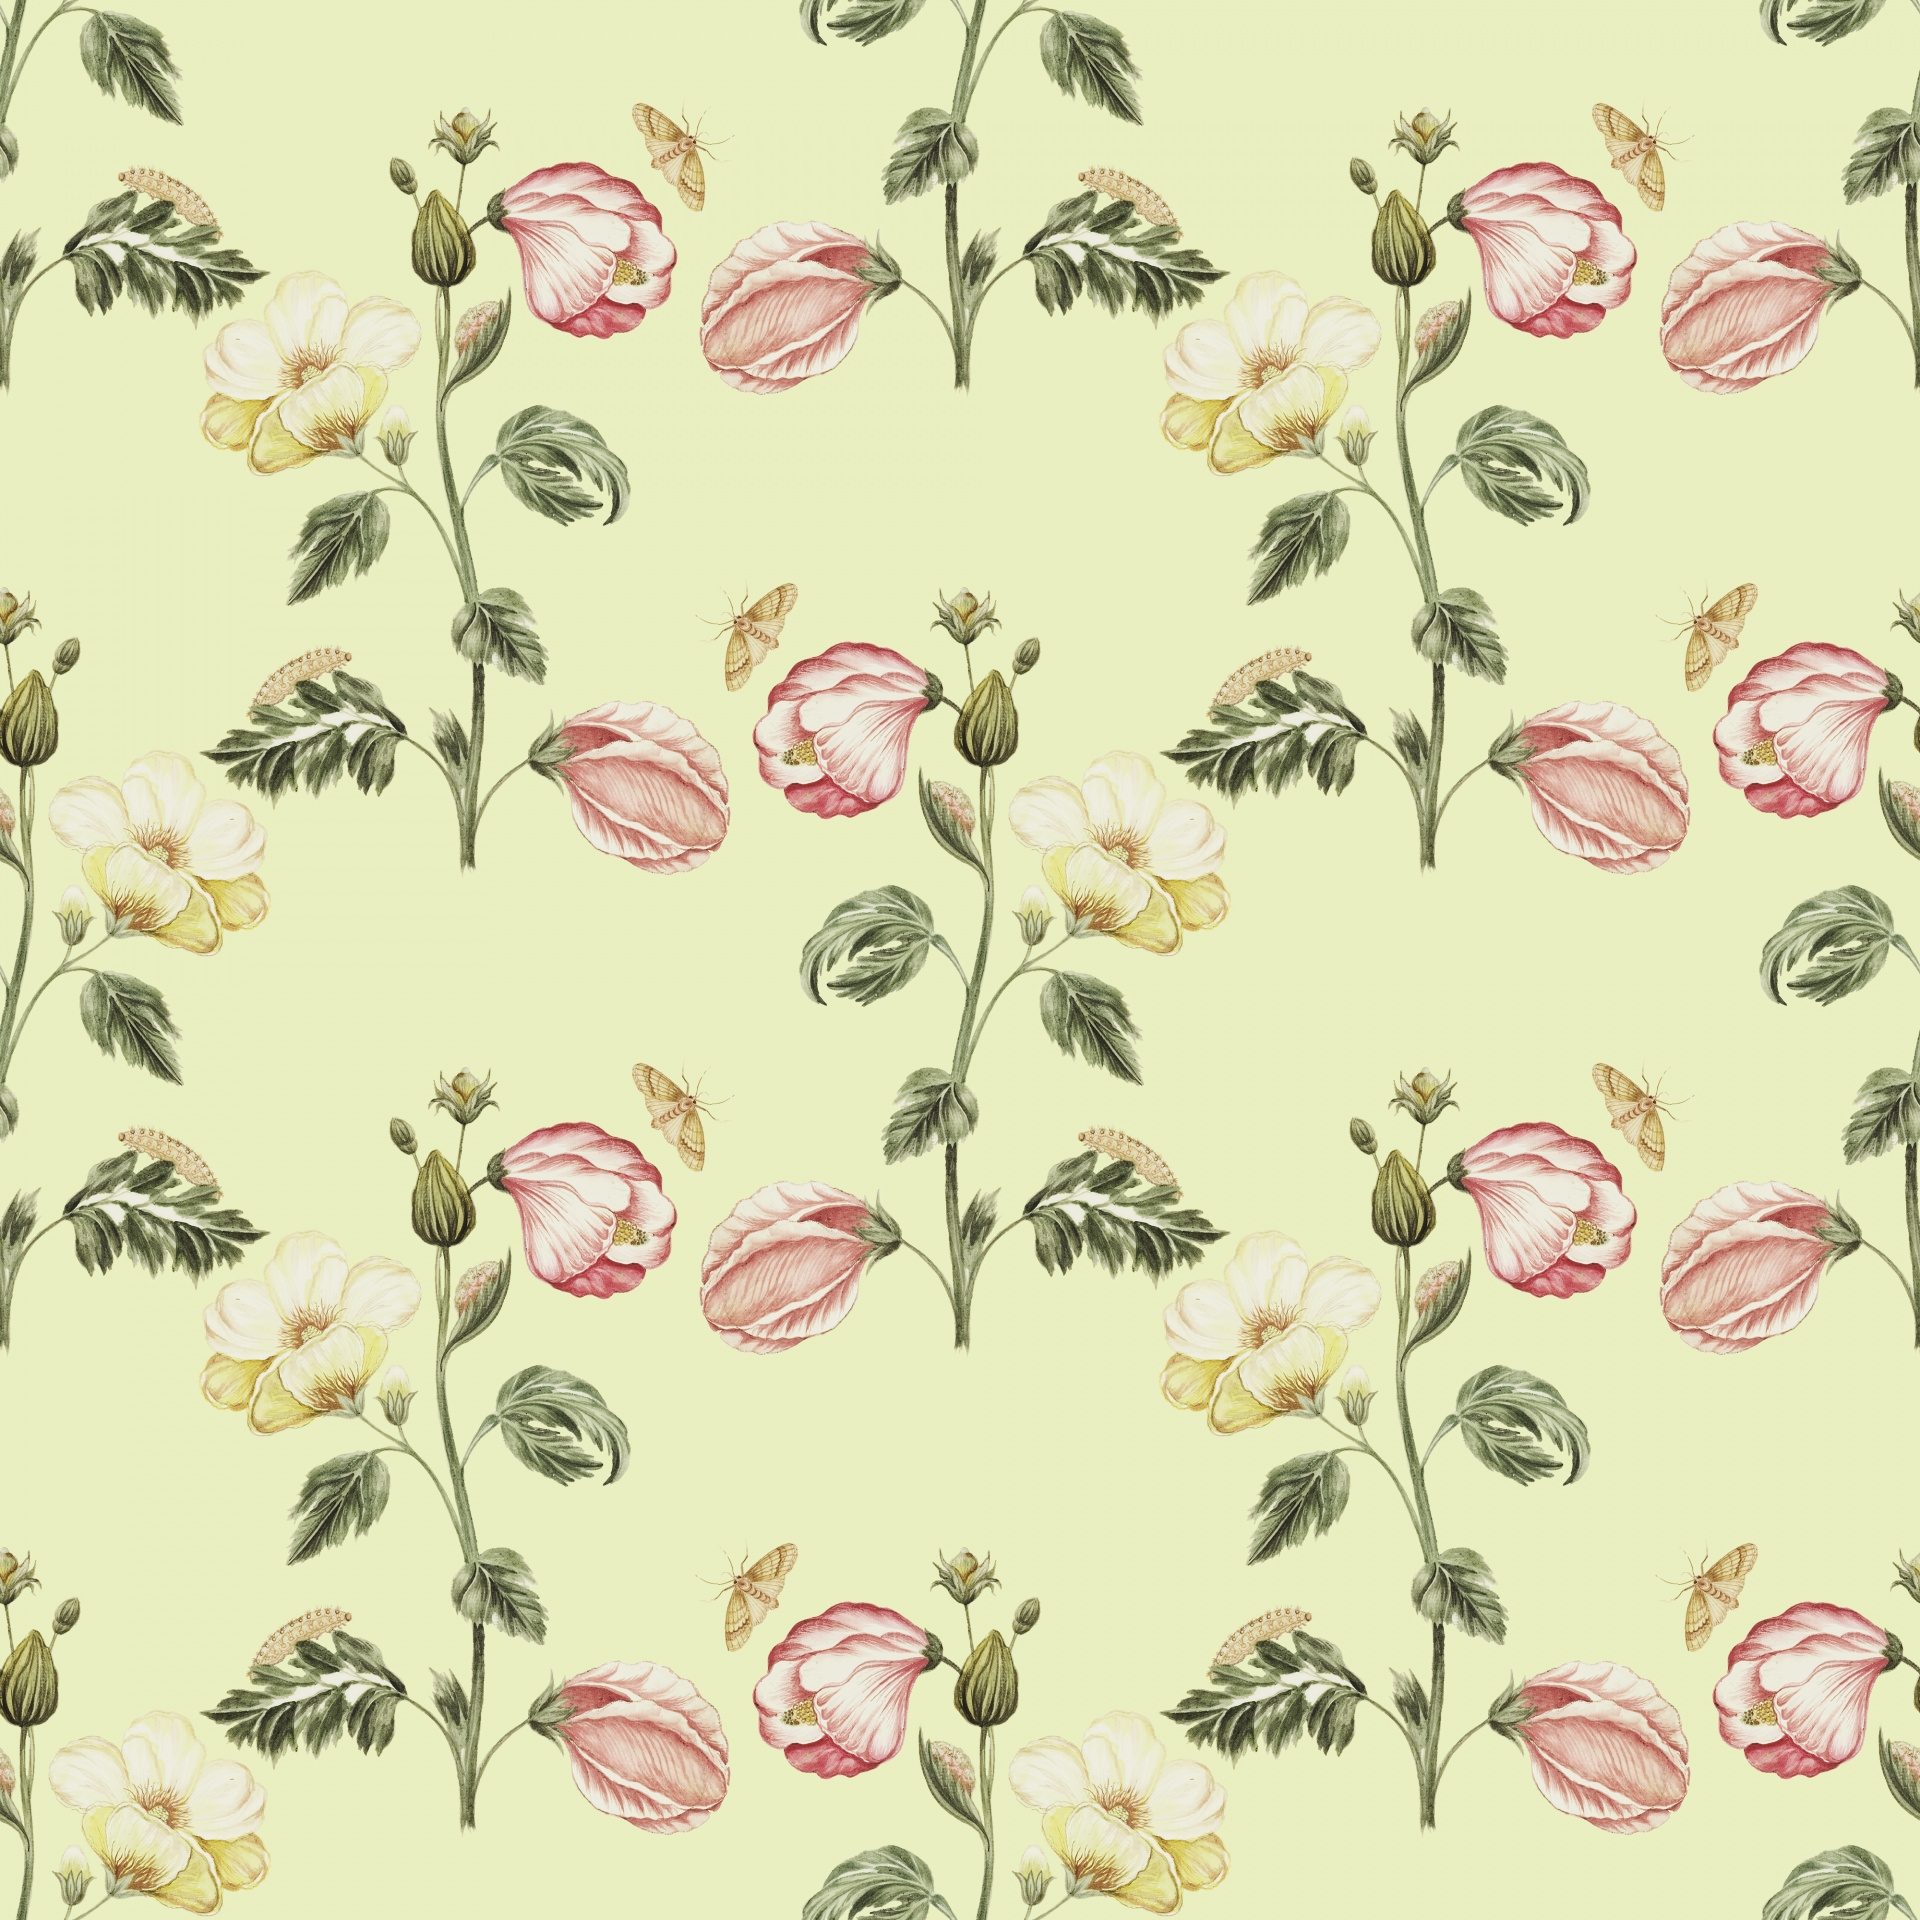 Vintage Floral Wallpaper Background Free Stock Photo Public Domain Pictures